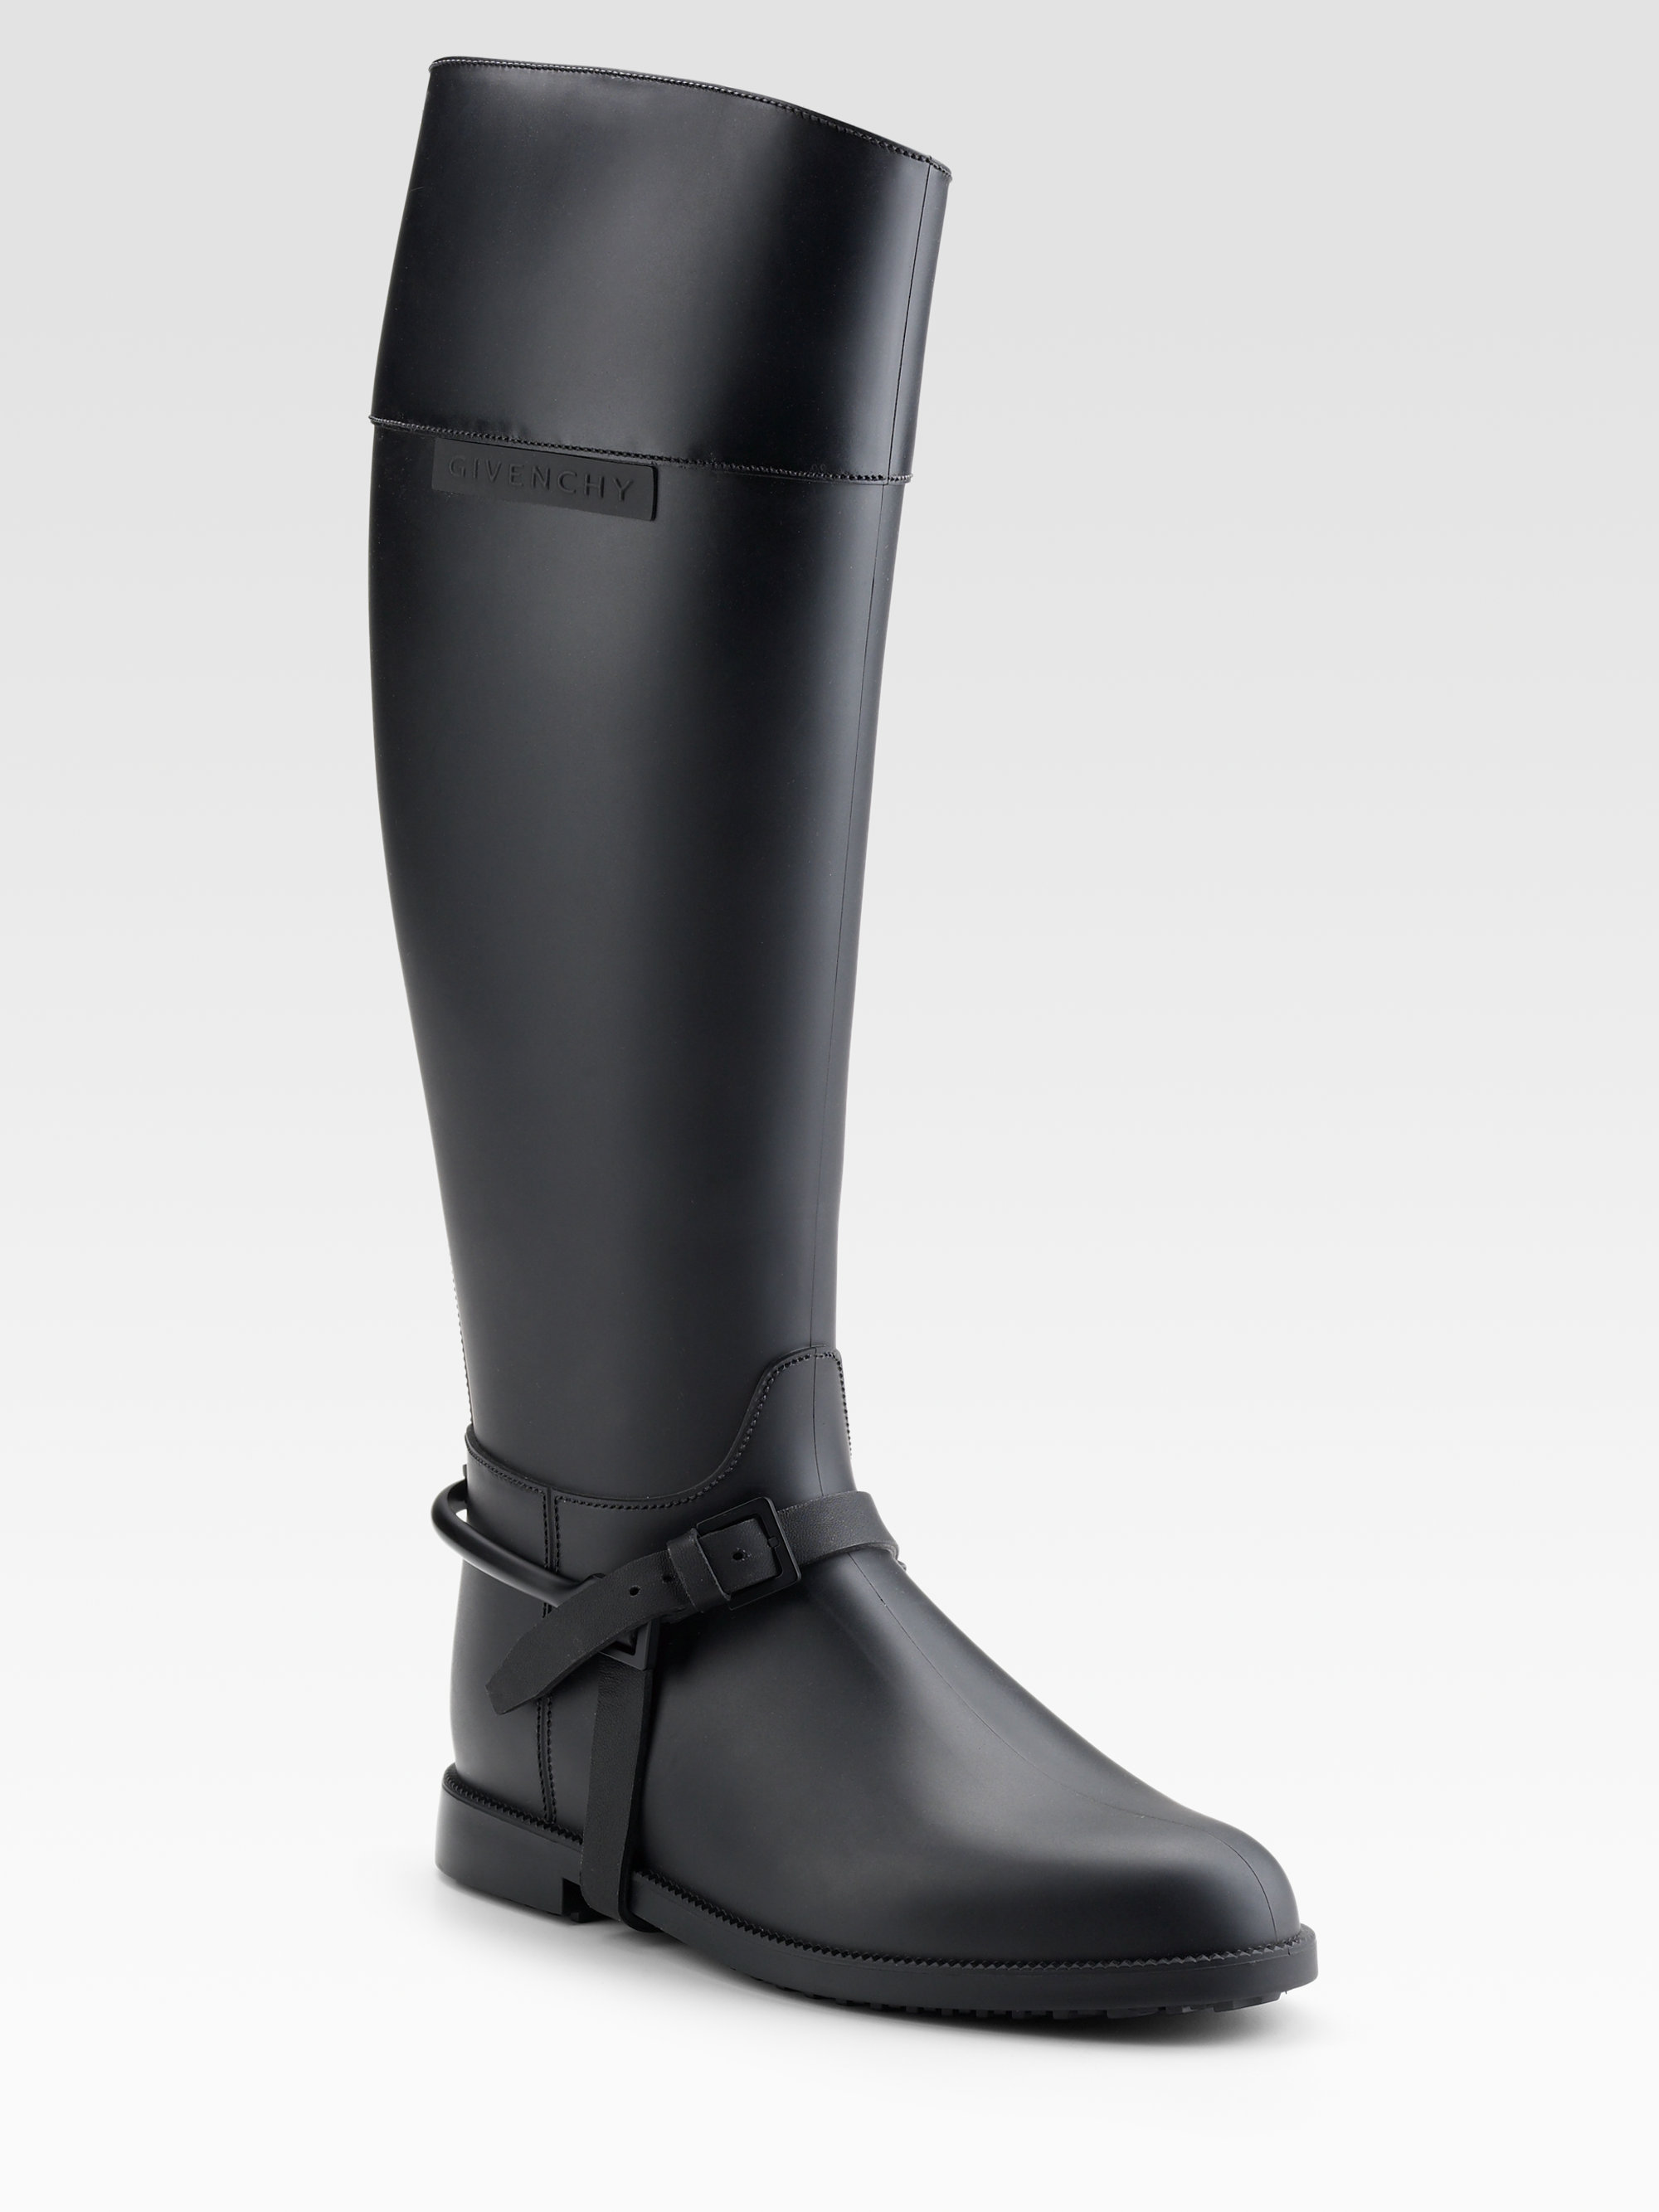 Givenchy Tall Rubber Rainboots In Black Lyst